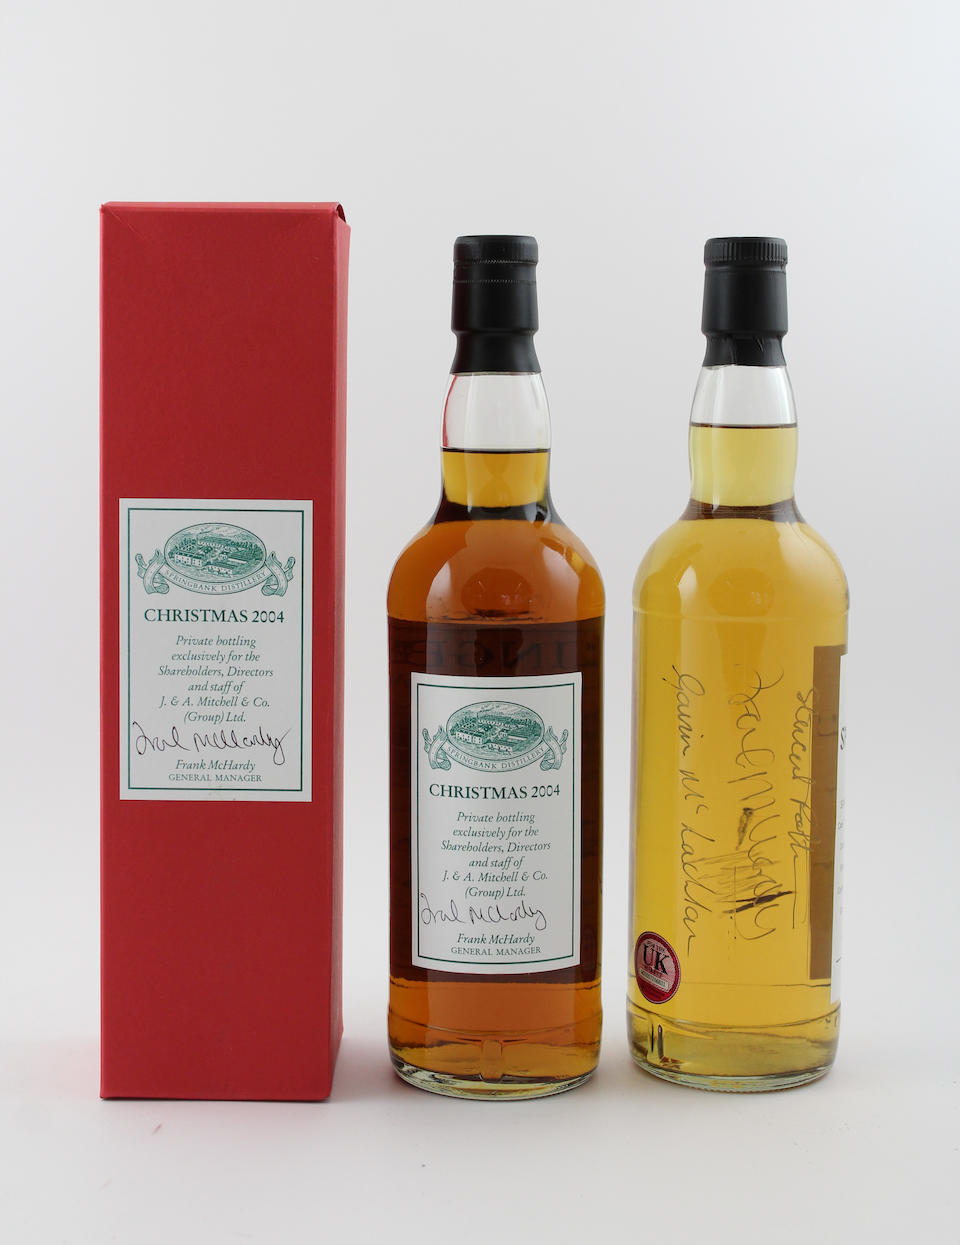 Springbank Christmas-2004-8 year old Springbank-10 year old-1999